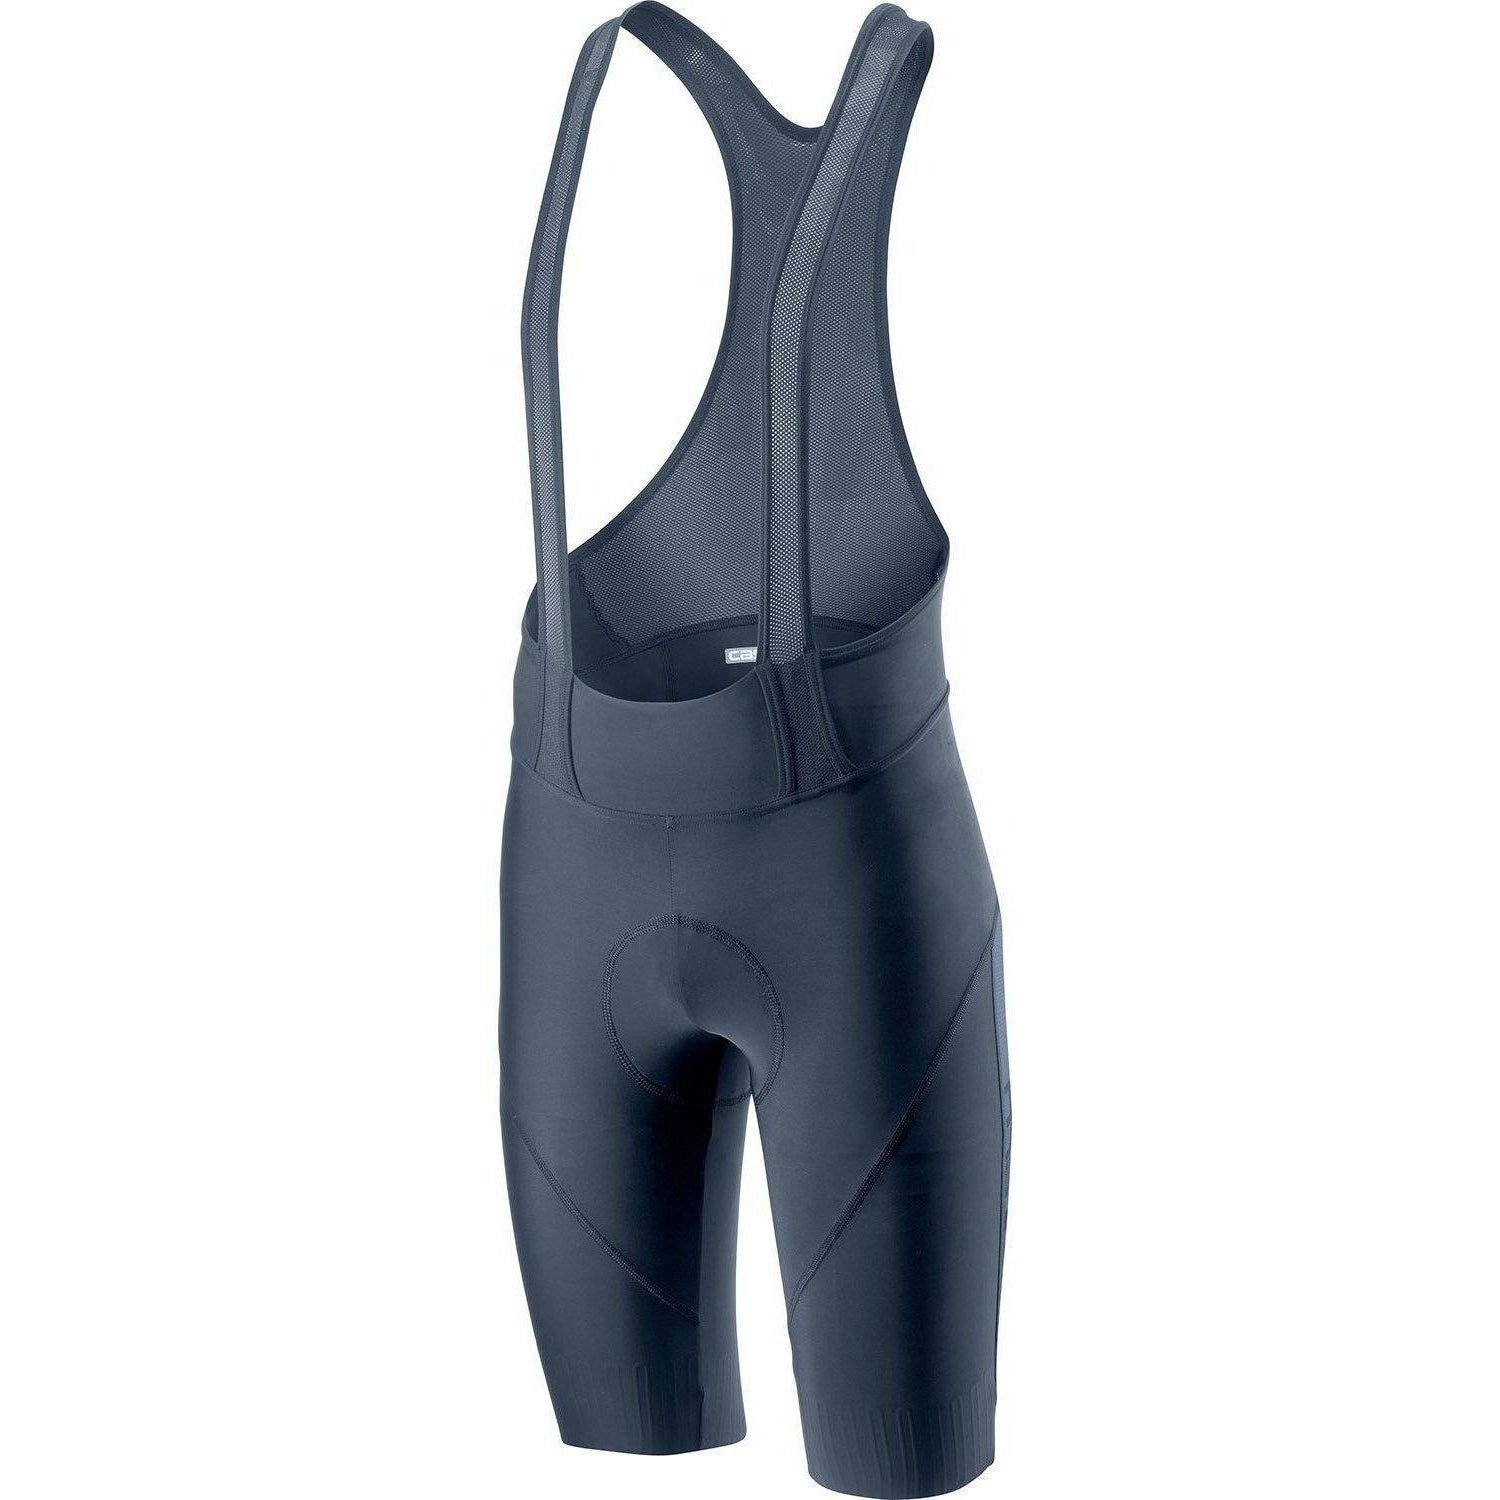 Castelli-Castelli Velocissimo 4 Bib Shorts-Dark Steel Blue-S-CS180090702-saddleback-elite-performance-cycling